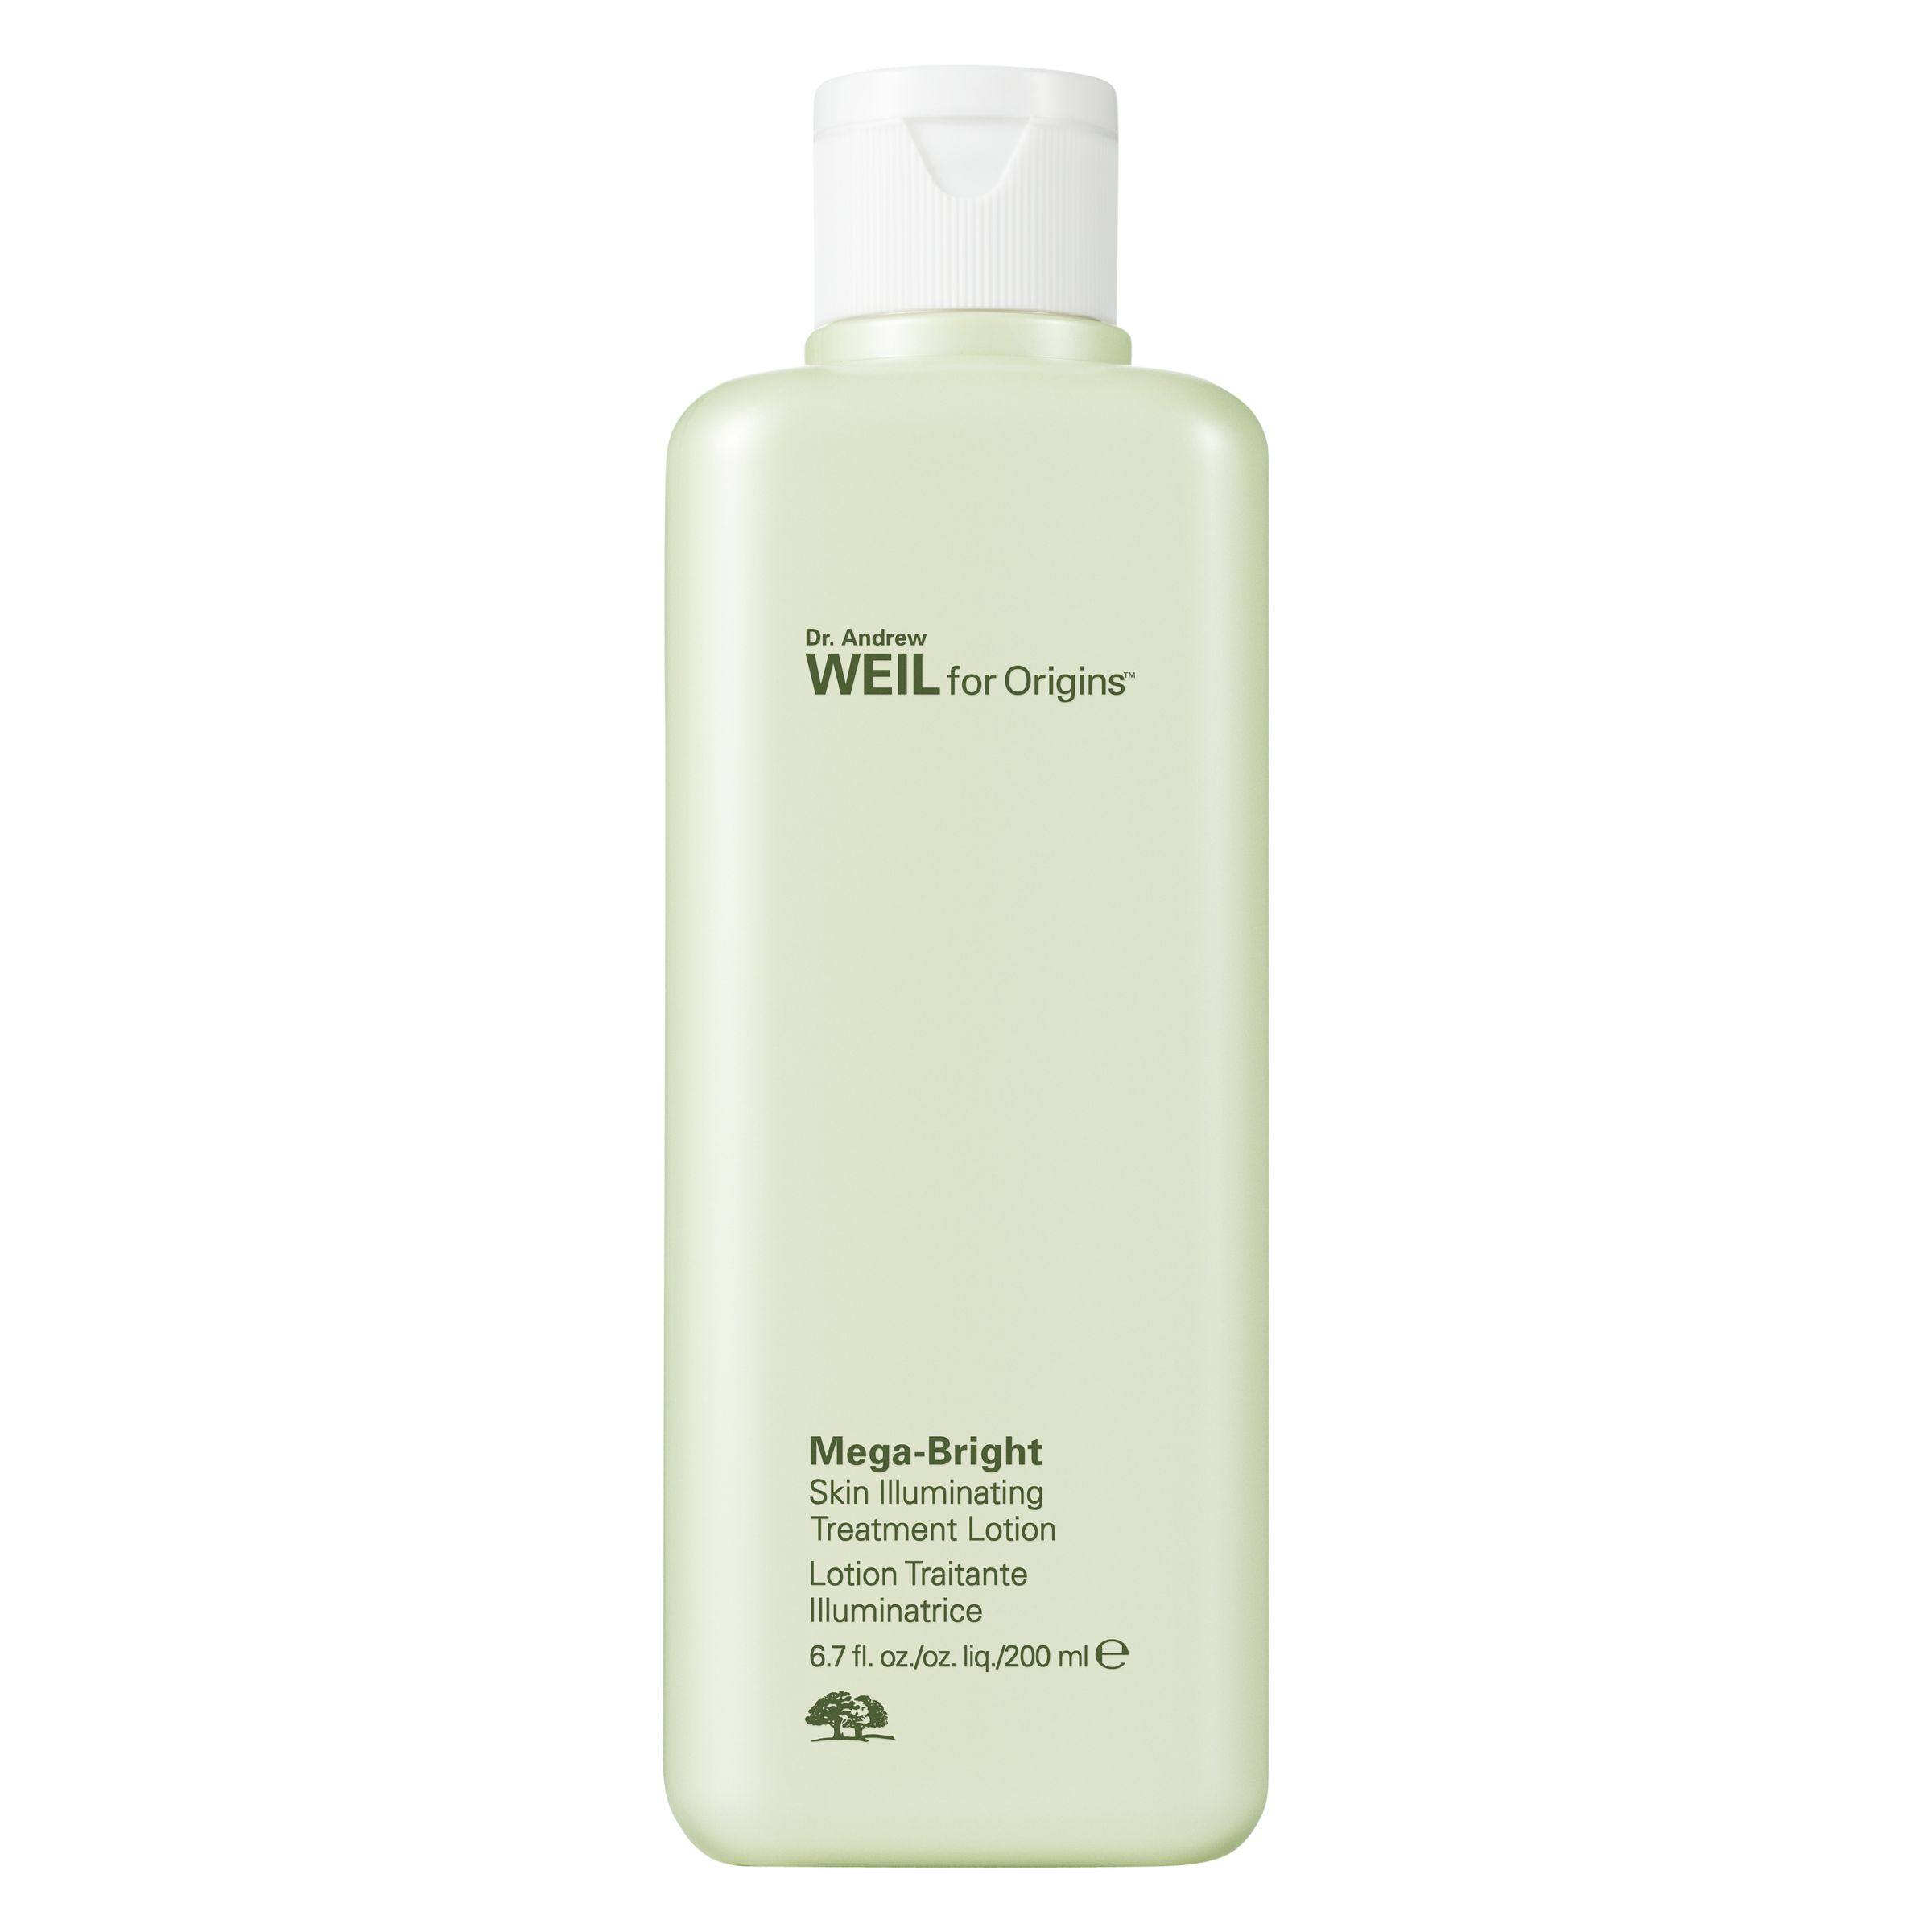 Origins Dr. Andrew Weil for Origins™ Mega-Bright Skin IlluminatingTreatment Lotion, 200ml